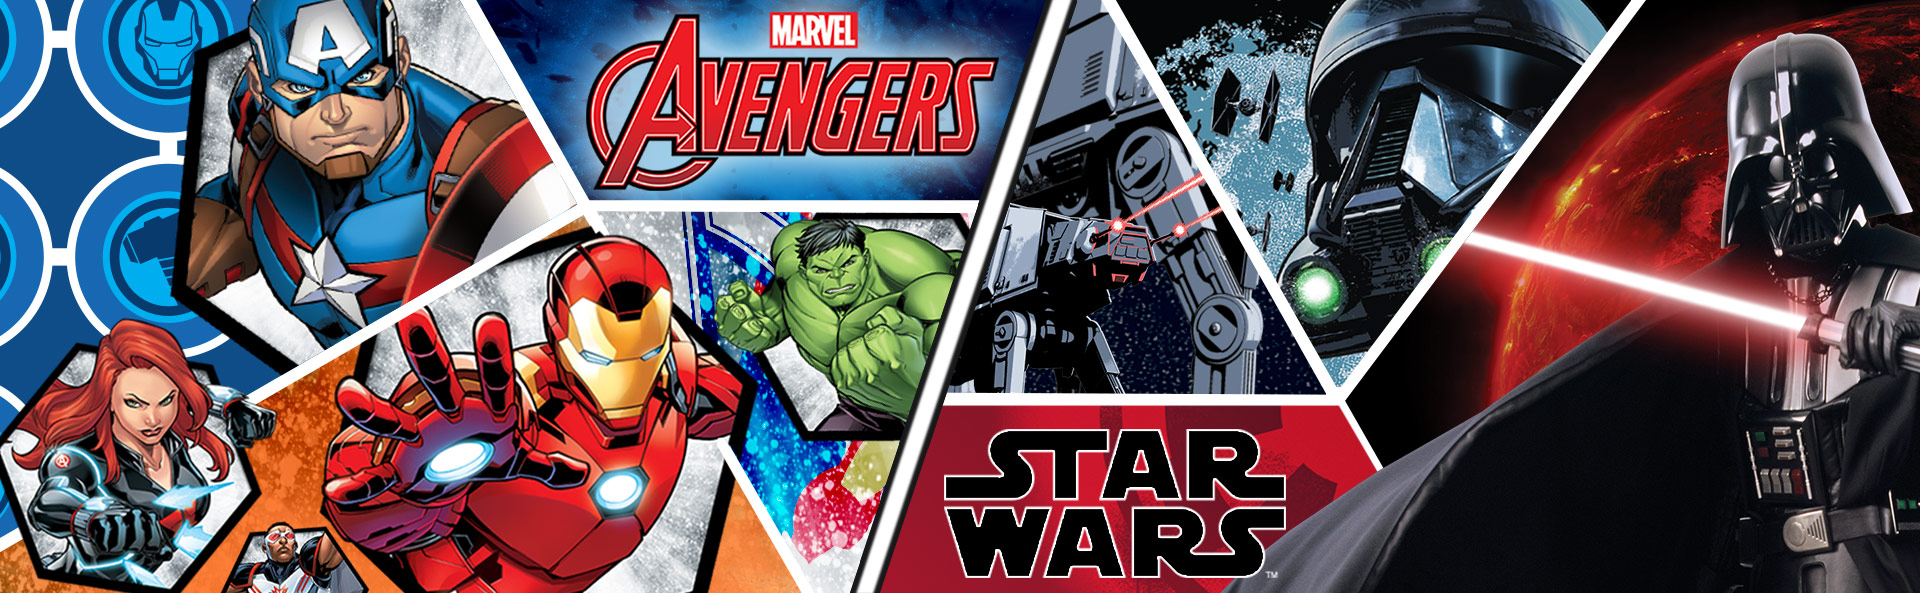 accessori zaini avengers star wars